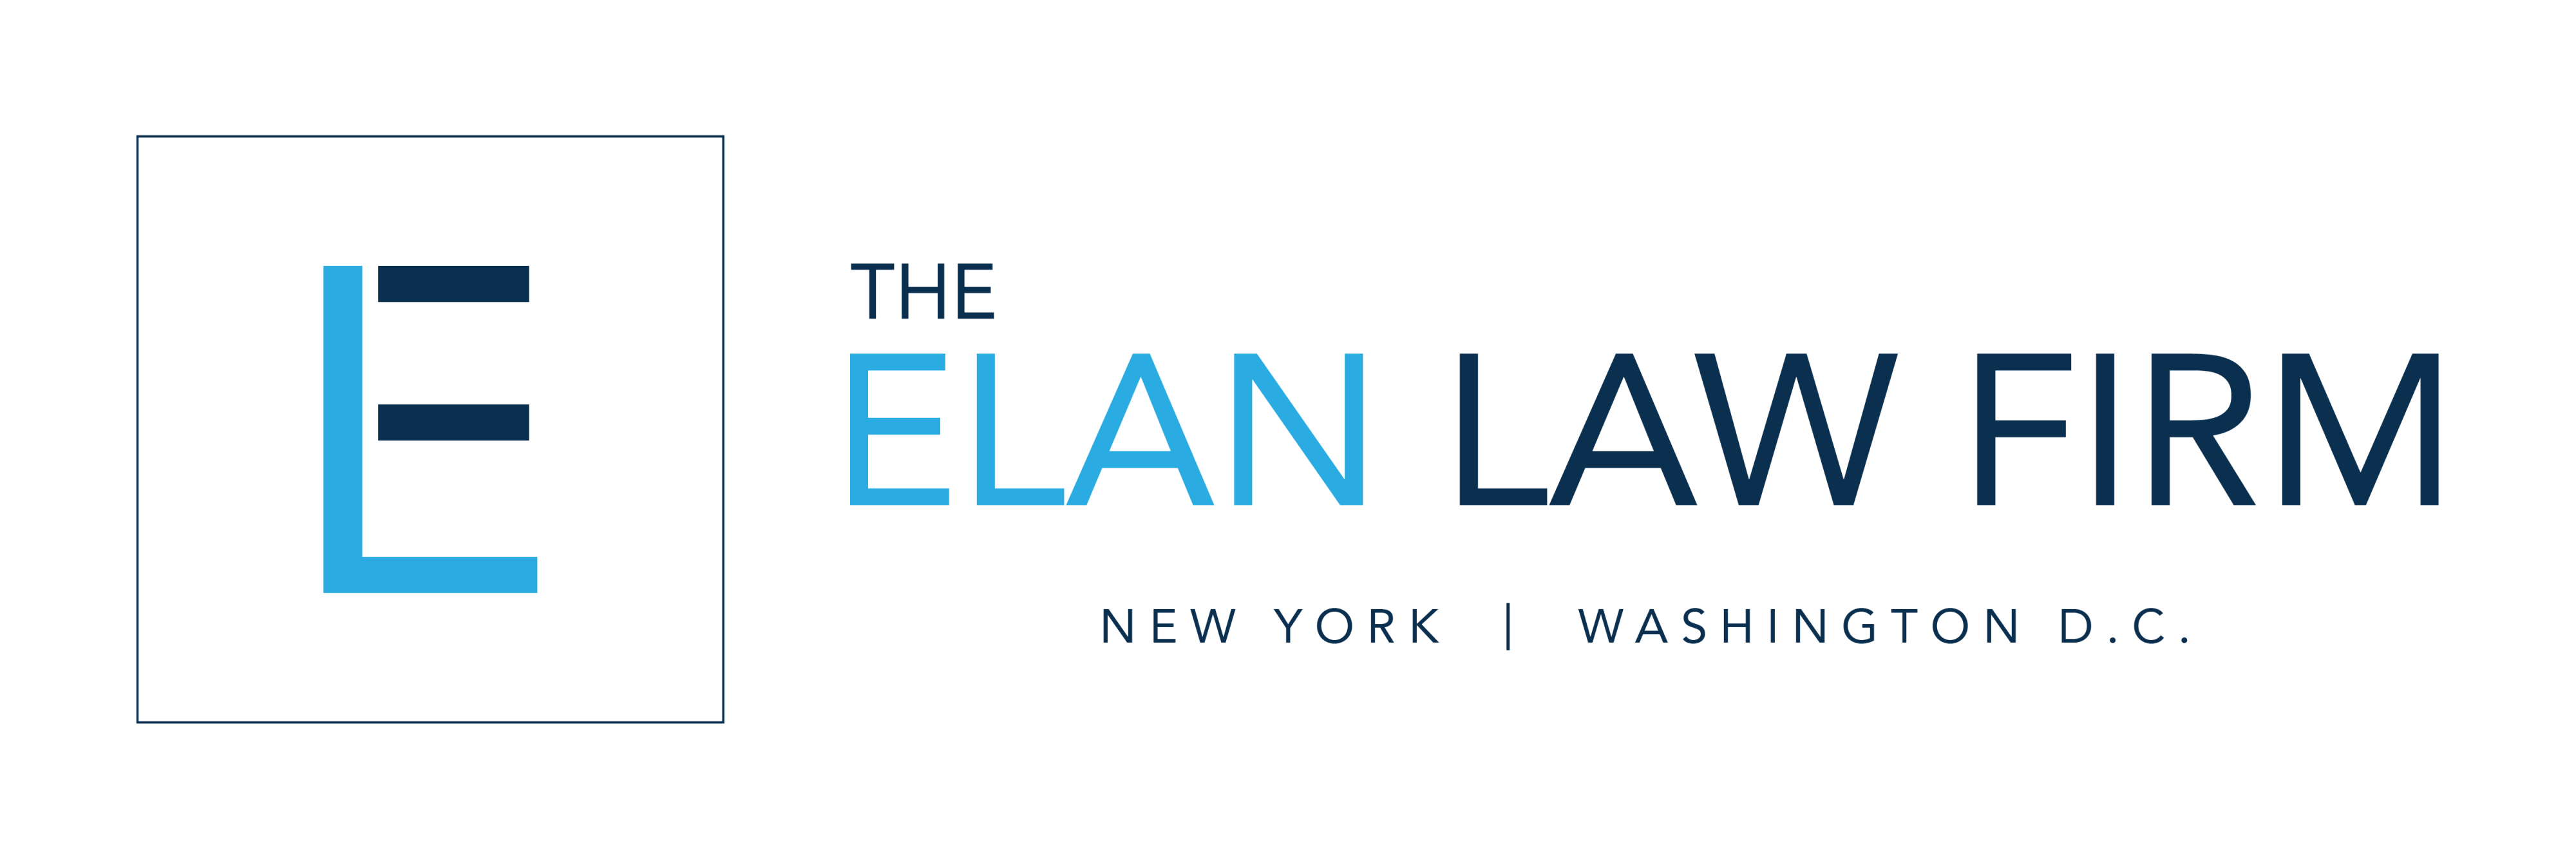 The Elan Law Firm